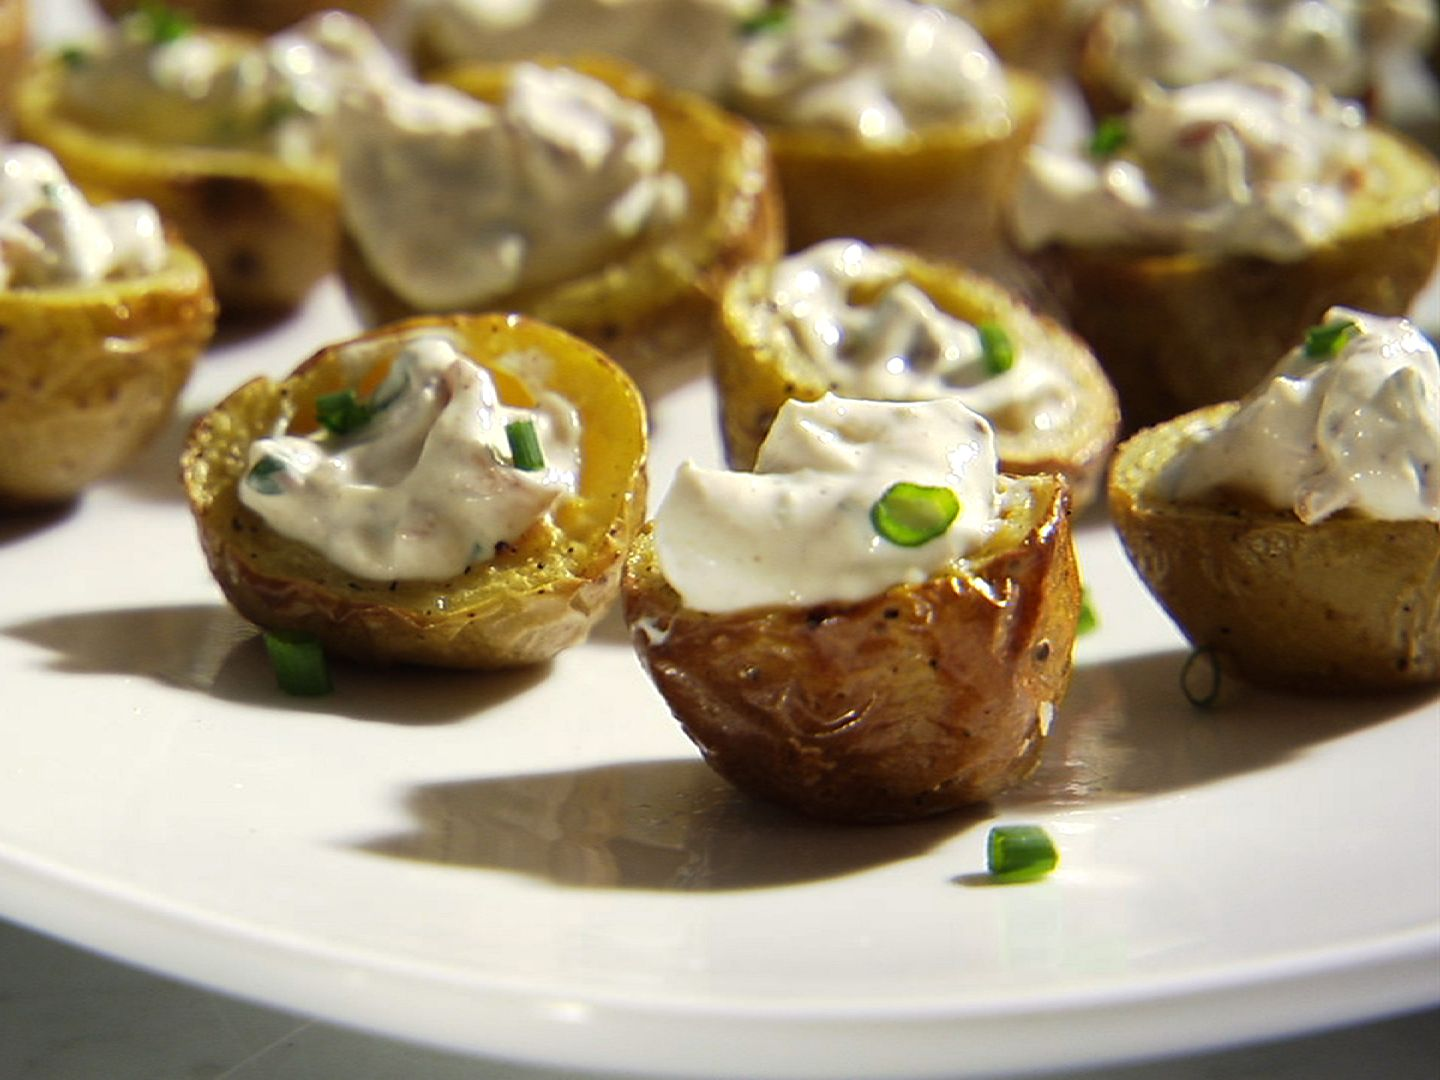 Crispy Baby Potato Bites with Sour Cream and Bacon from FoodNetwork.com